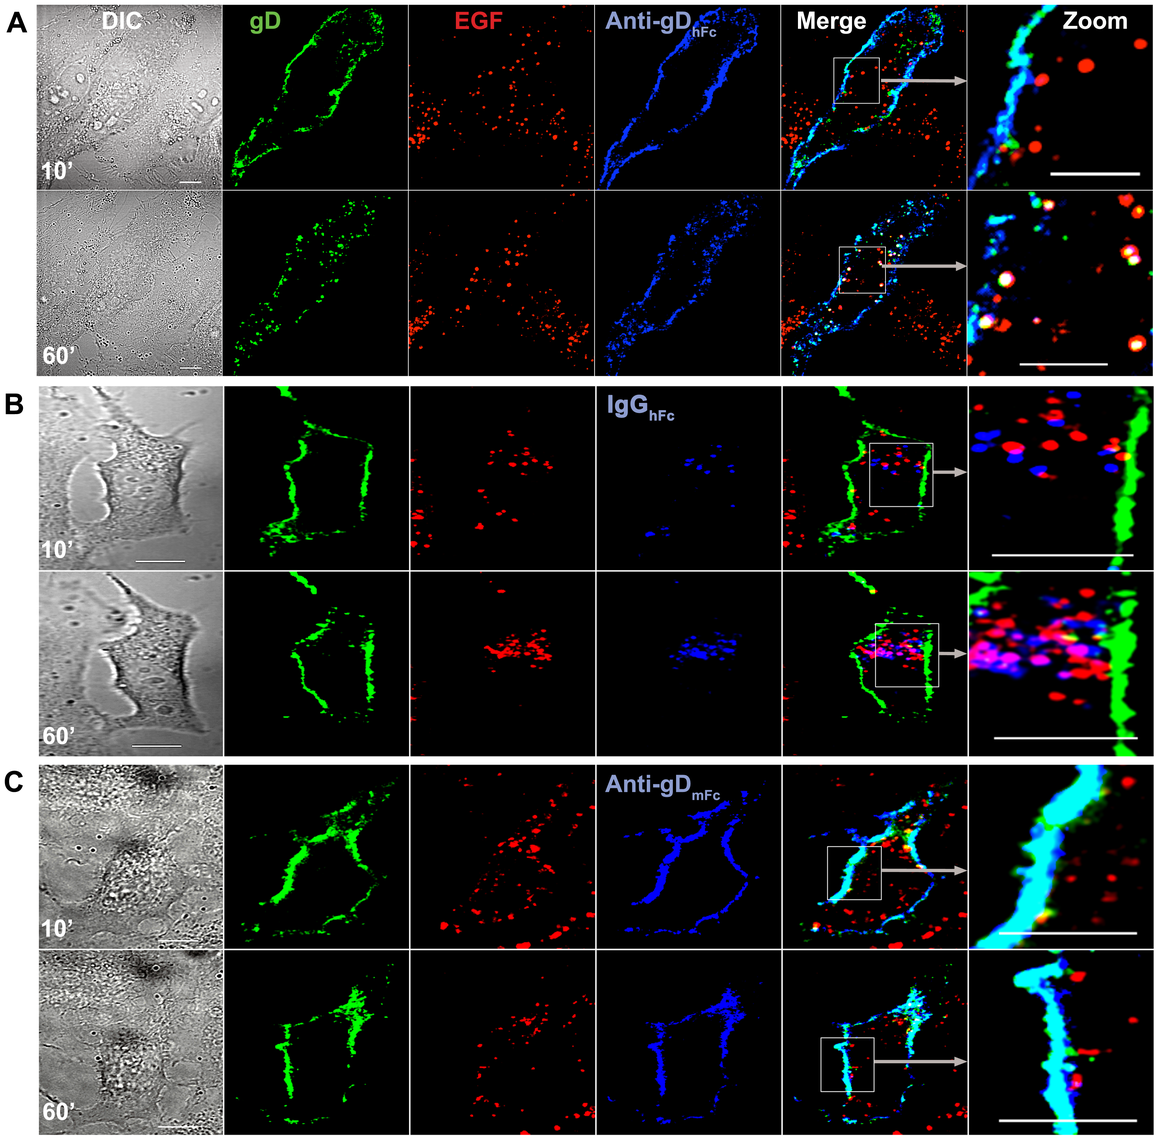 Lysosomal trafficking of HSV-1 gD and IgG under ABB-permissive and non-permissive conditions.